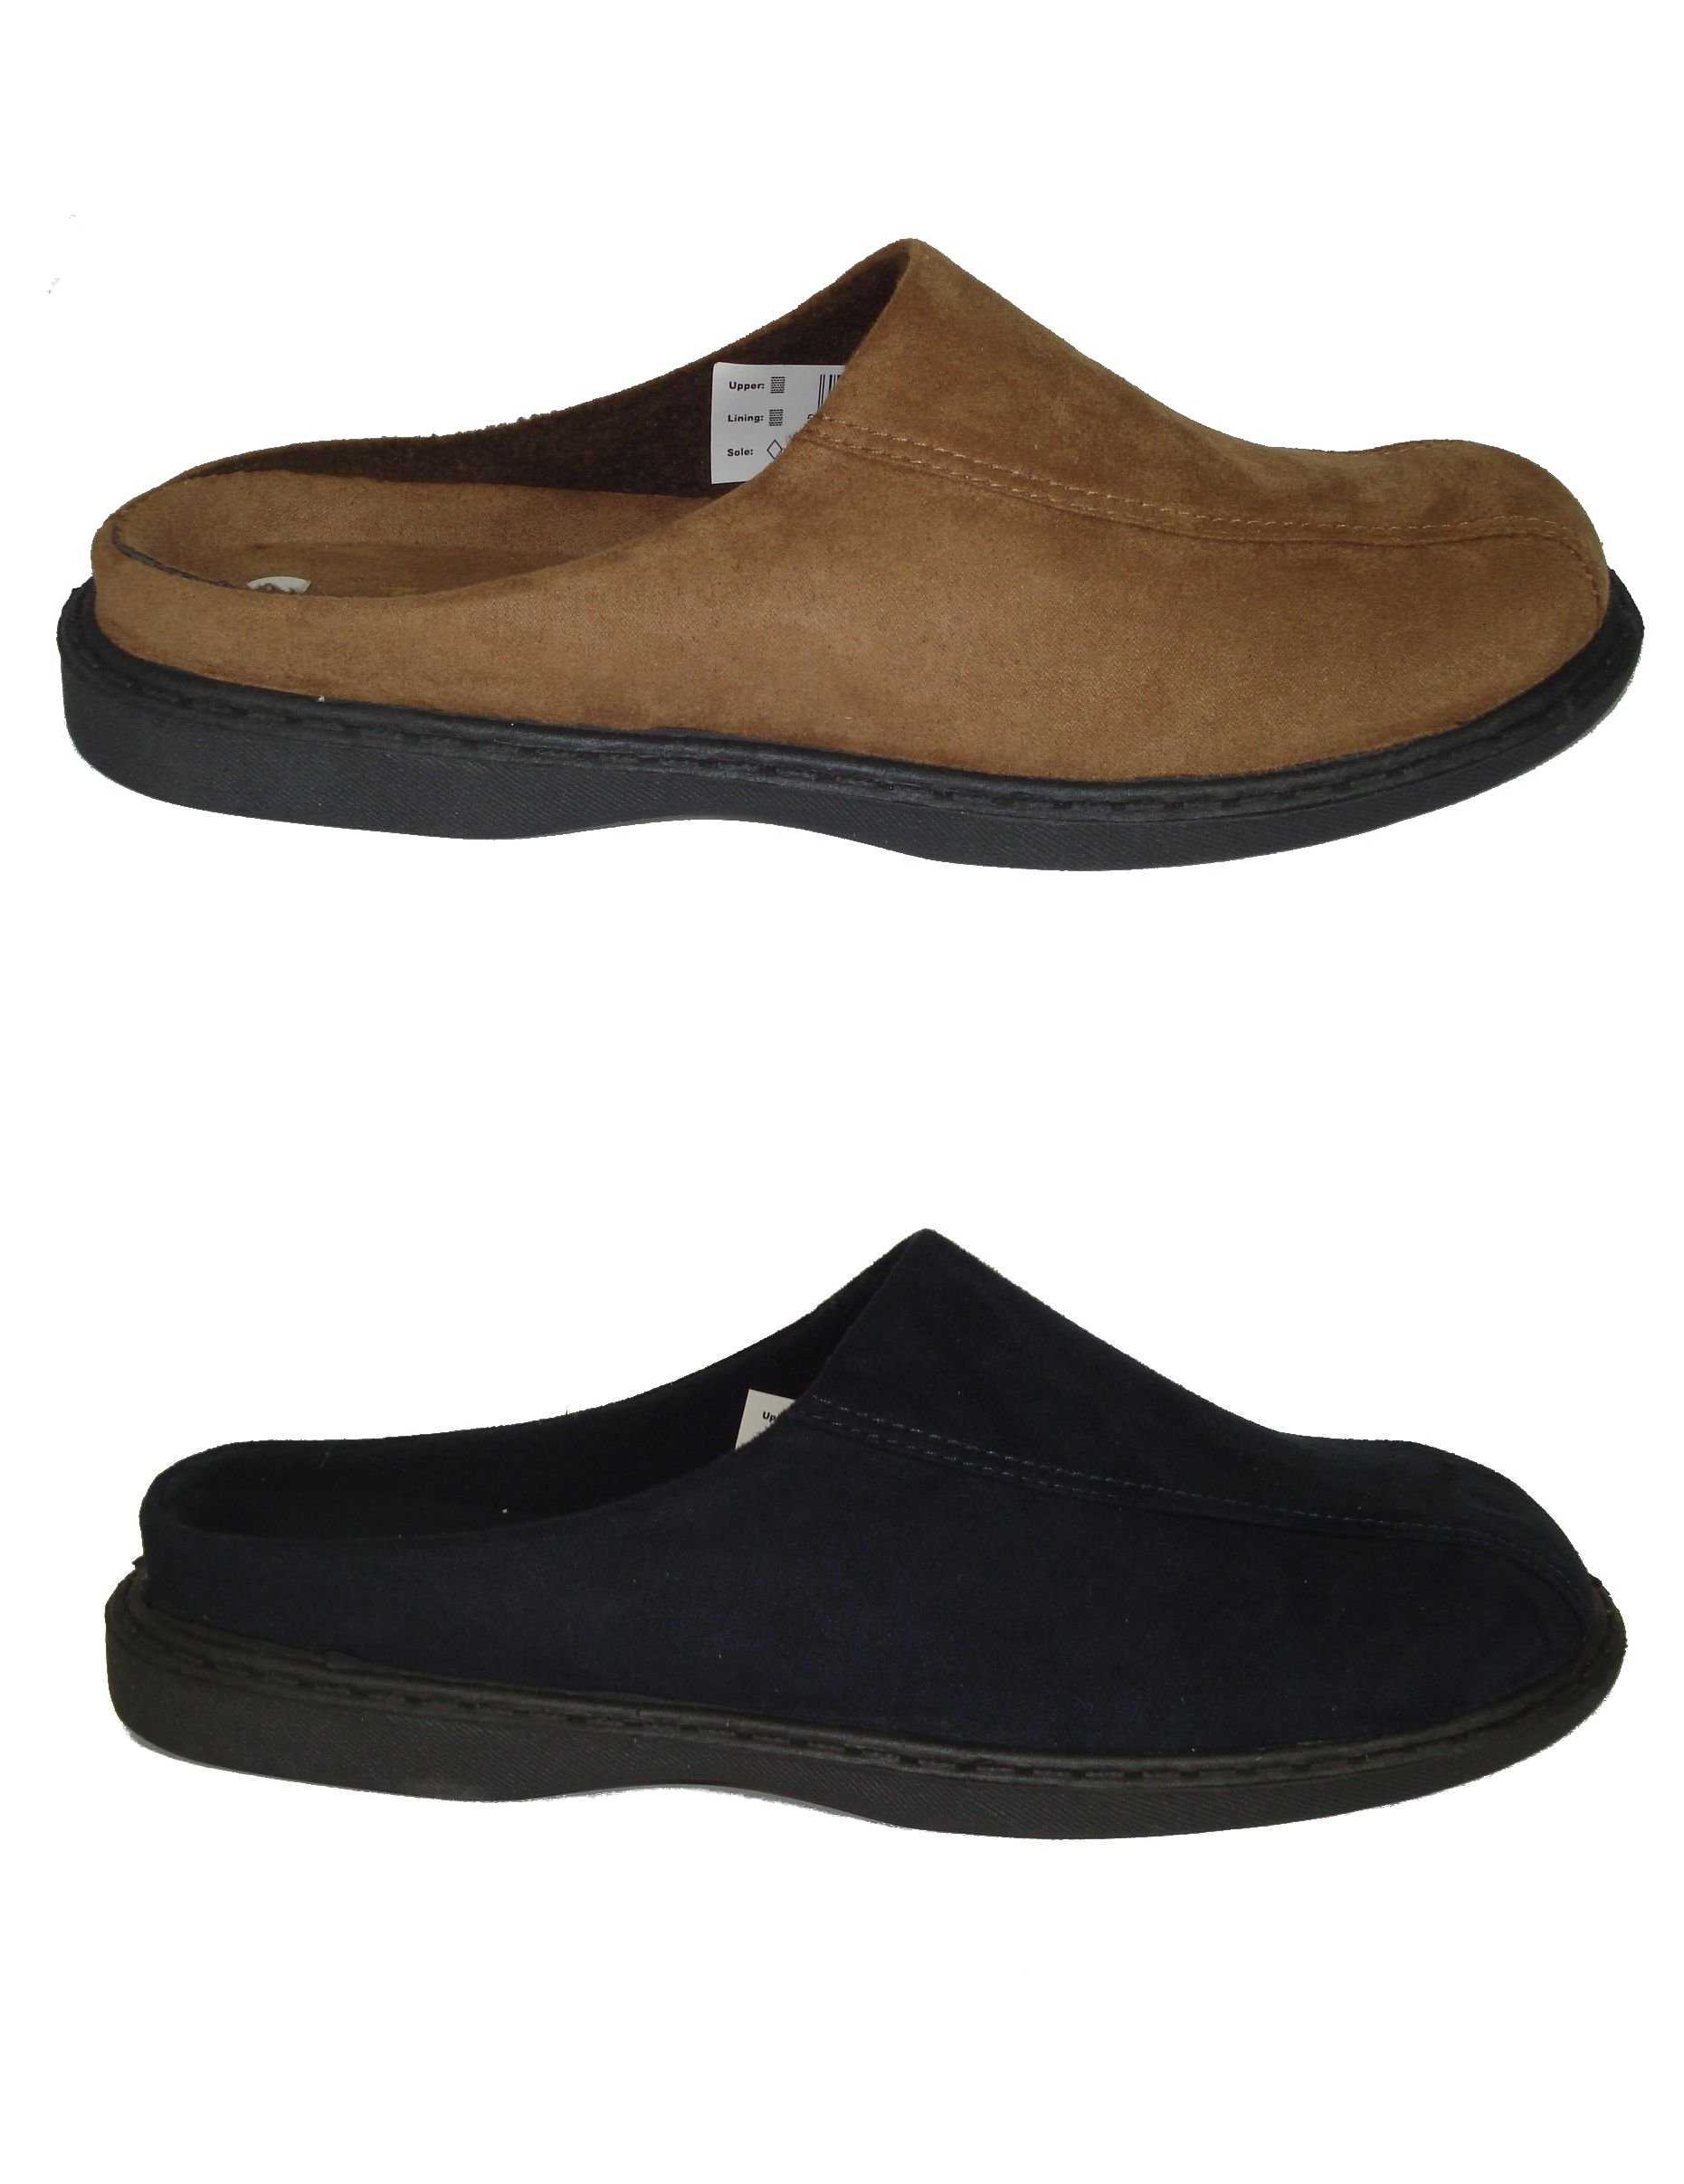 Mens Zedzzz Micro Suede Mules Slippers in Blue or Brown Sizes 6 to 12 Enlarged Preview